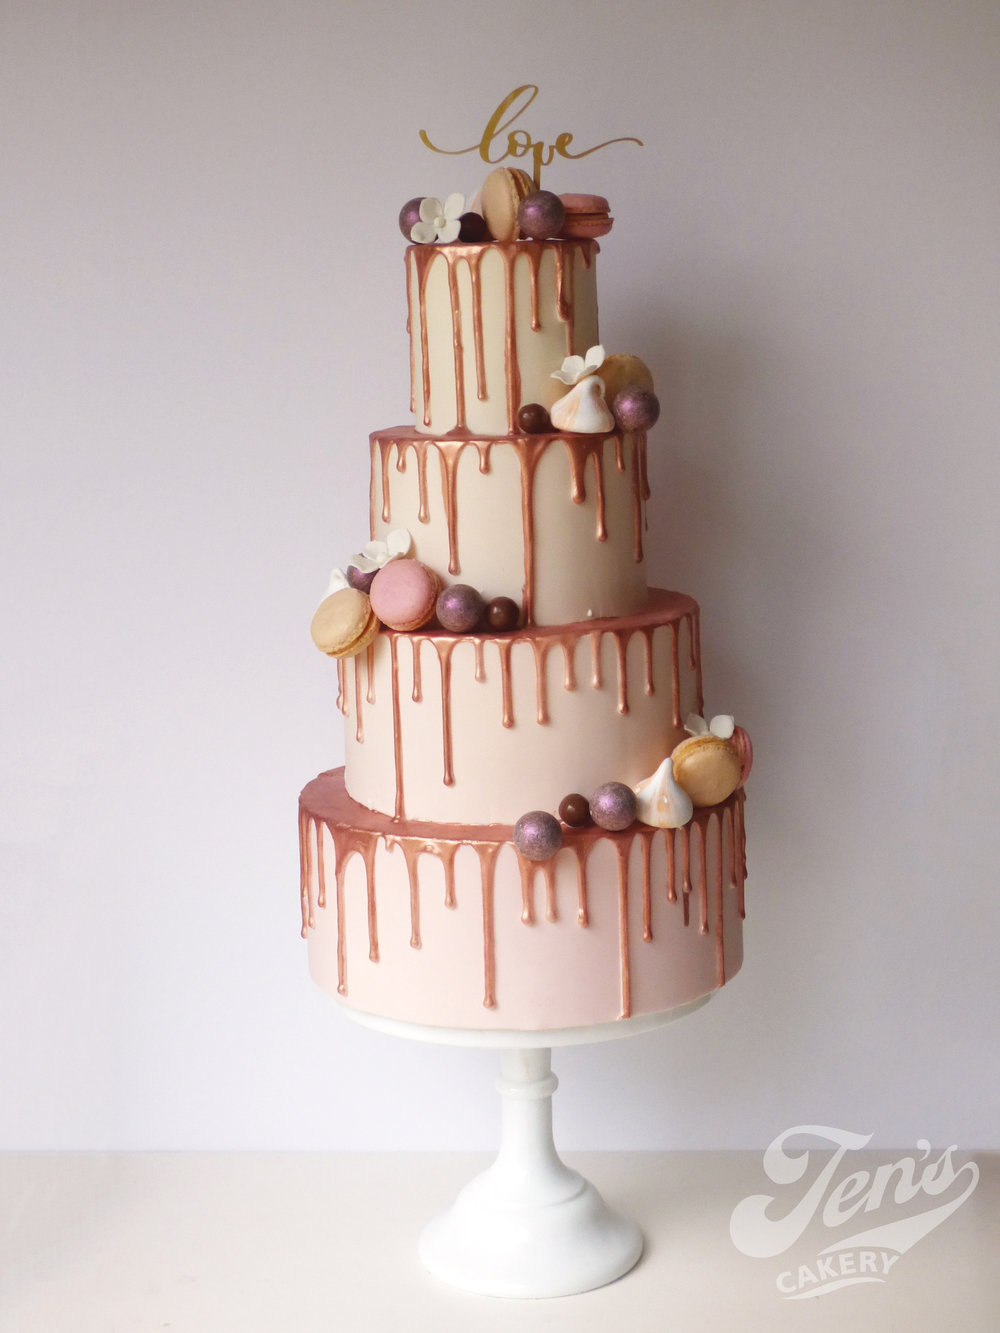 Drip wedding cake with rose gold metallic drips!